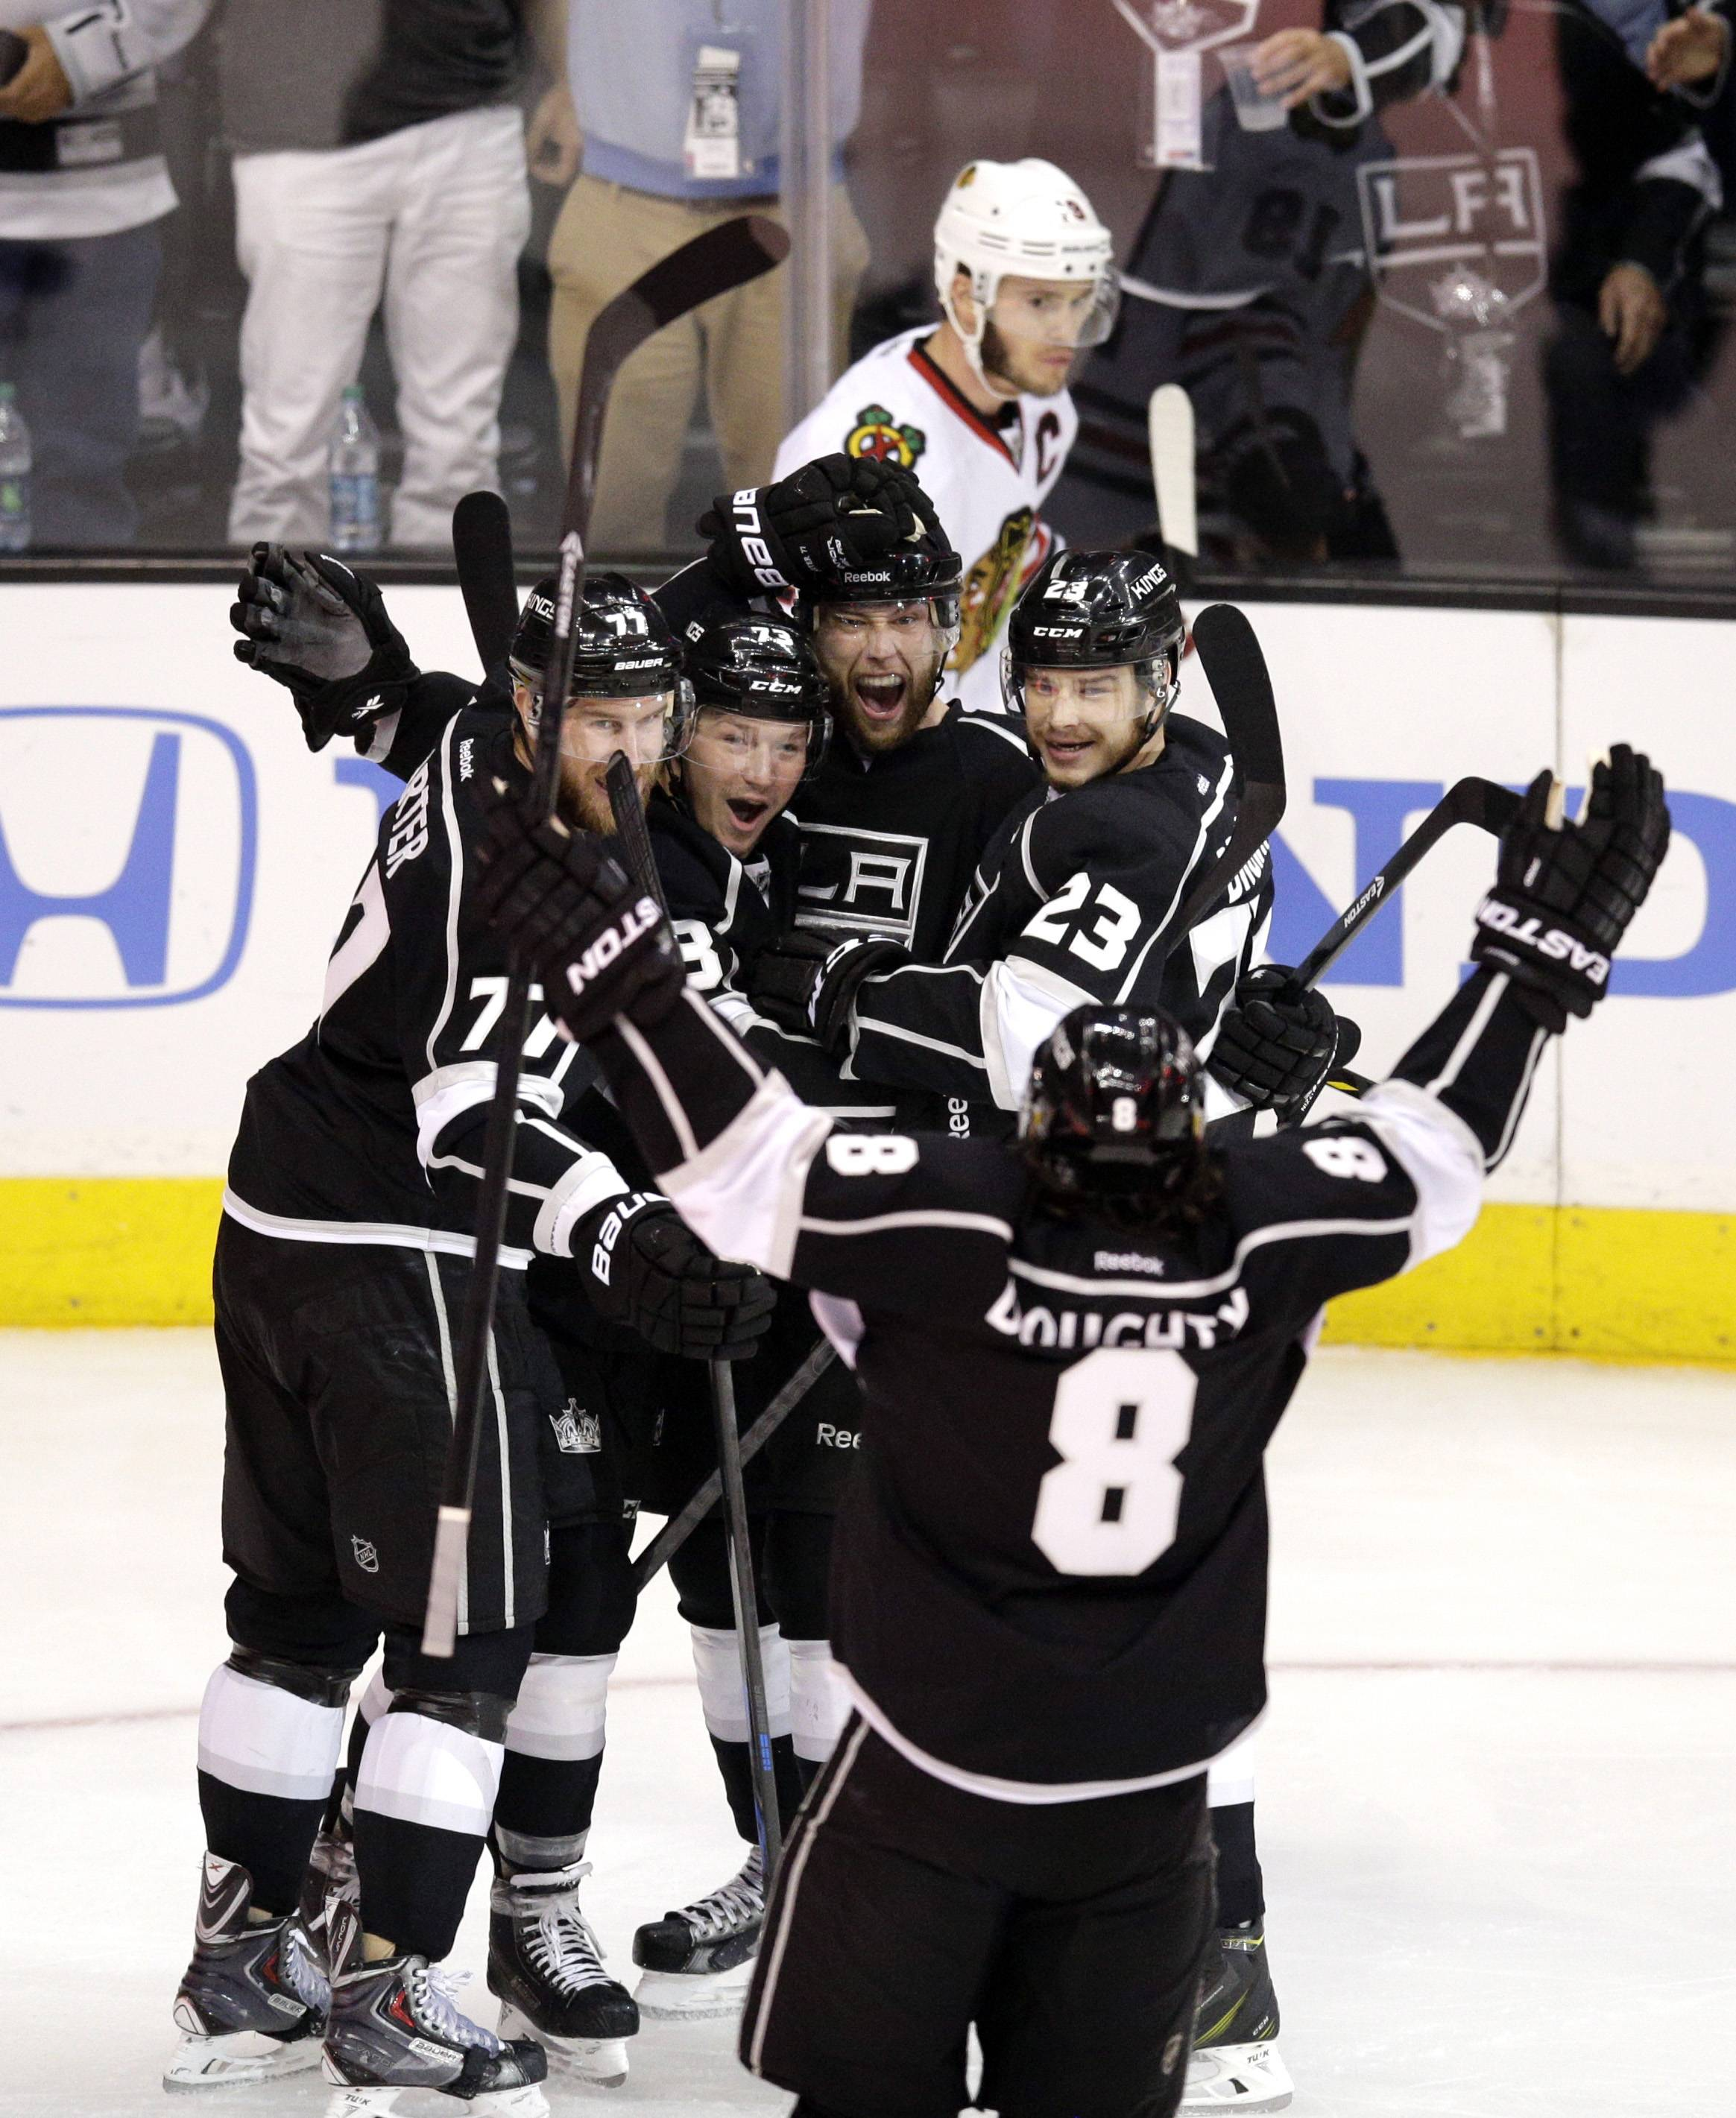 Los Angeles Kings' Jeff Carter (77), Tyler Toffoli (73), Jake Muzzin (6), Dustin Brown (23) and Drew Doughty (8) celebrate a goal by Muzzin as Chicago Blackhawks' Jonathan Toews skates behind them during the first period of Game 4 of the Western Conference finals of the NHL hockey Stanley Cup playoffs on Monday, May 26, 2014, in Los Angeles.